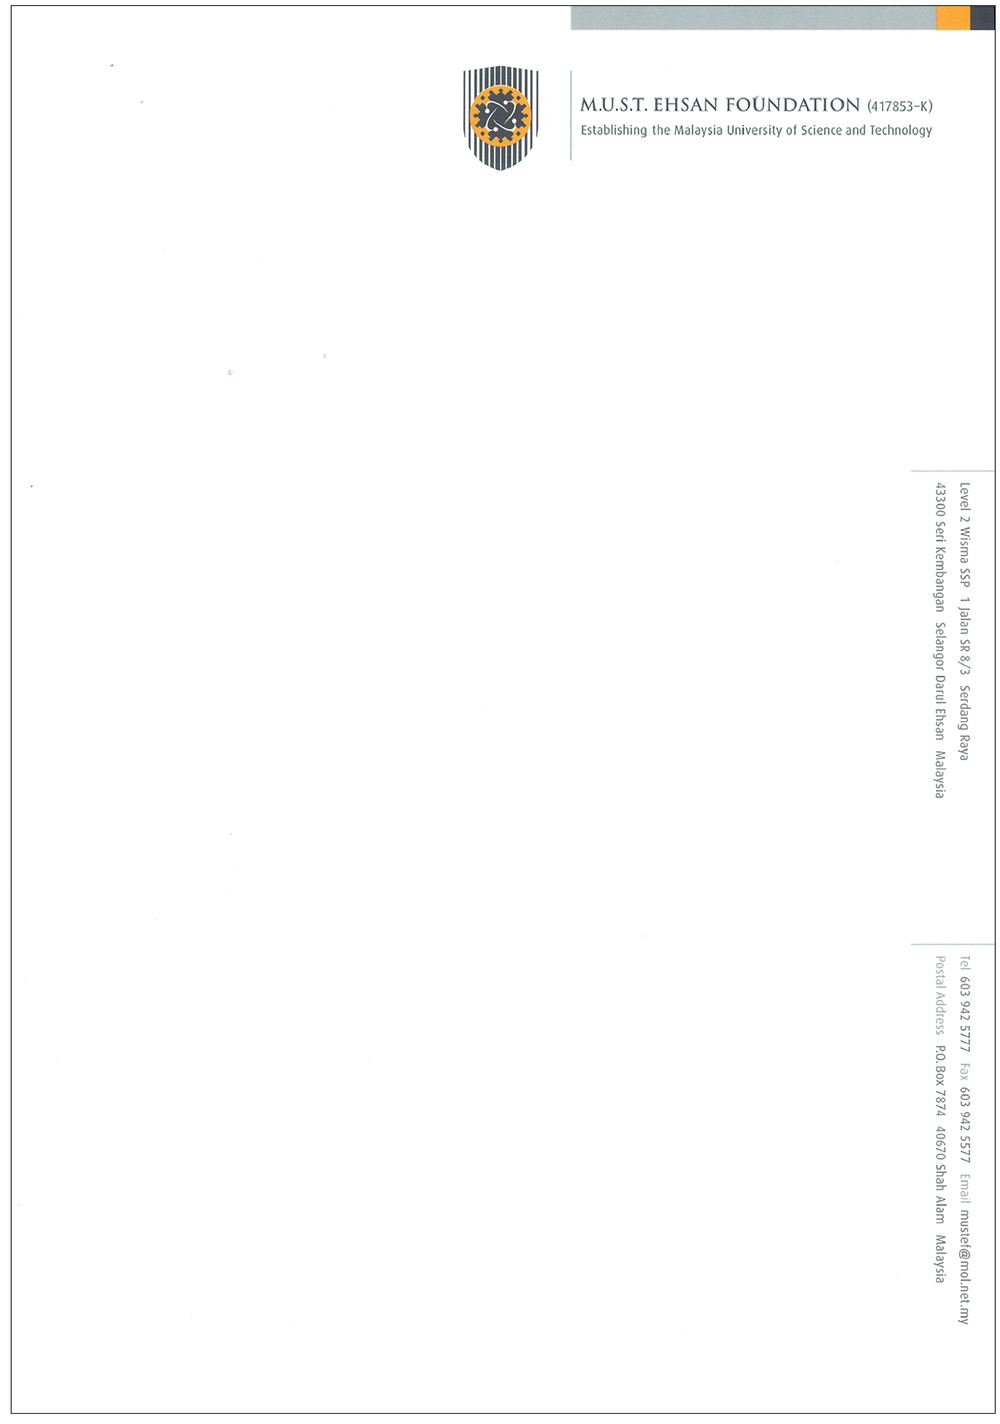 whwWeb_MUST_Letterhead_final_with border.png